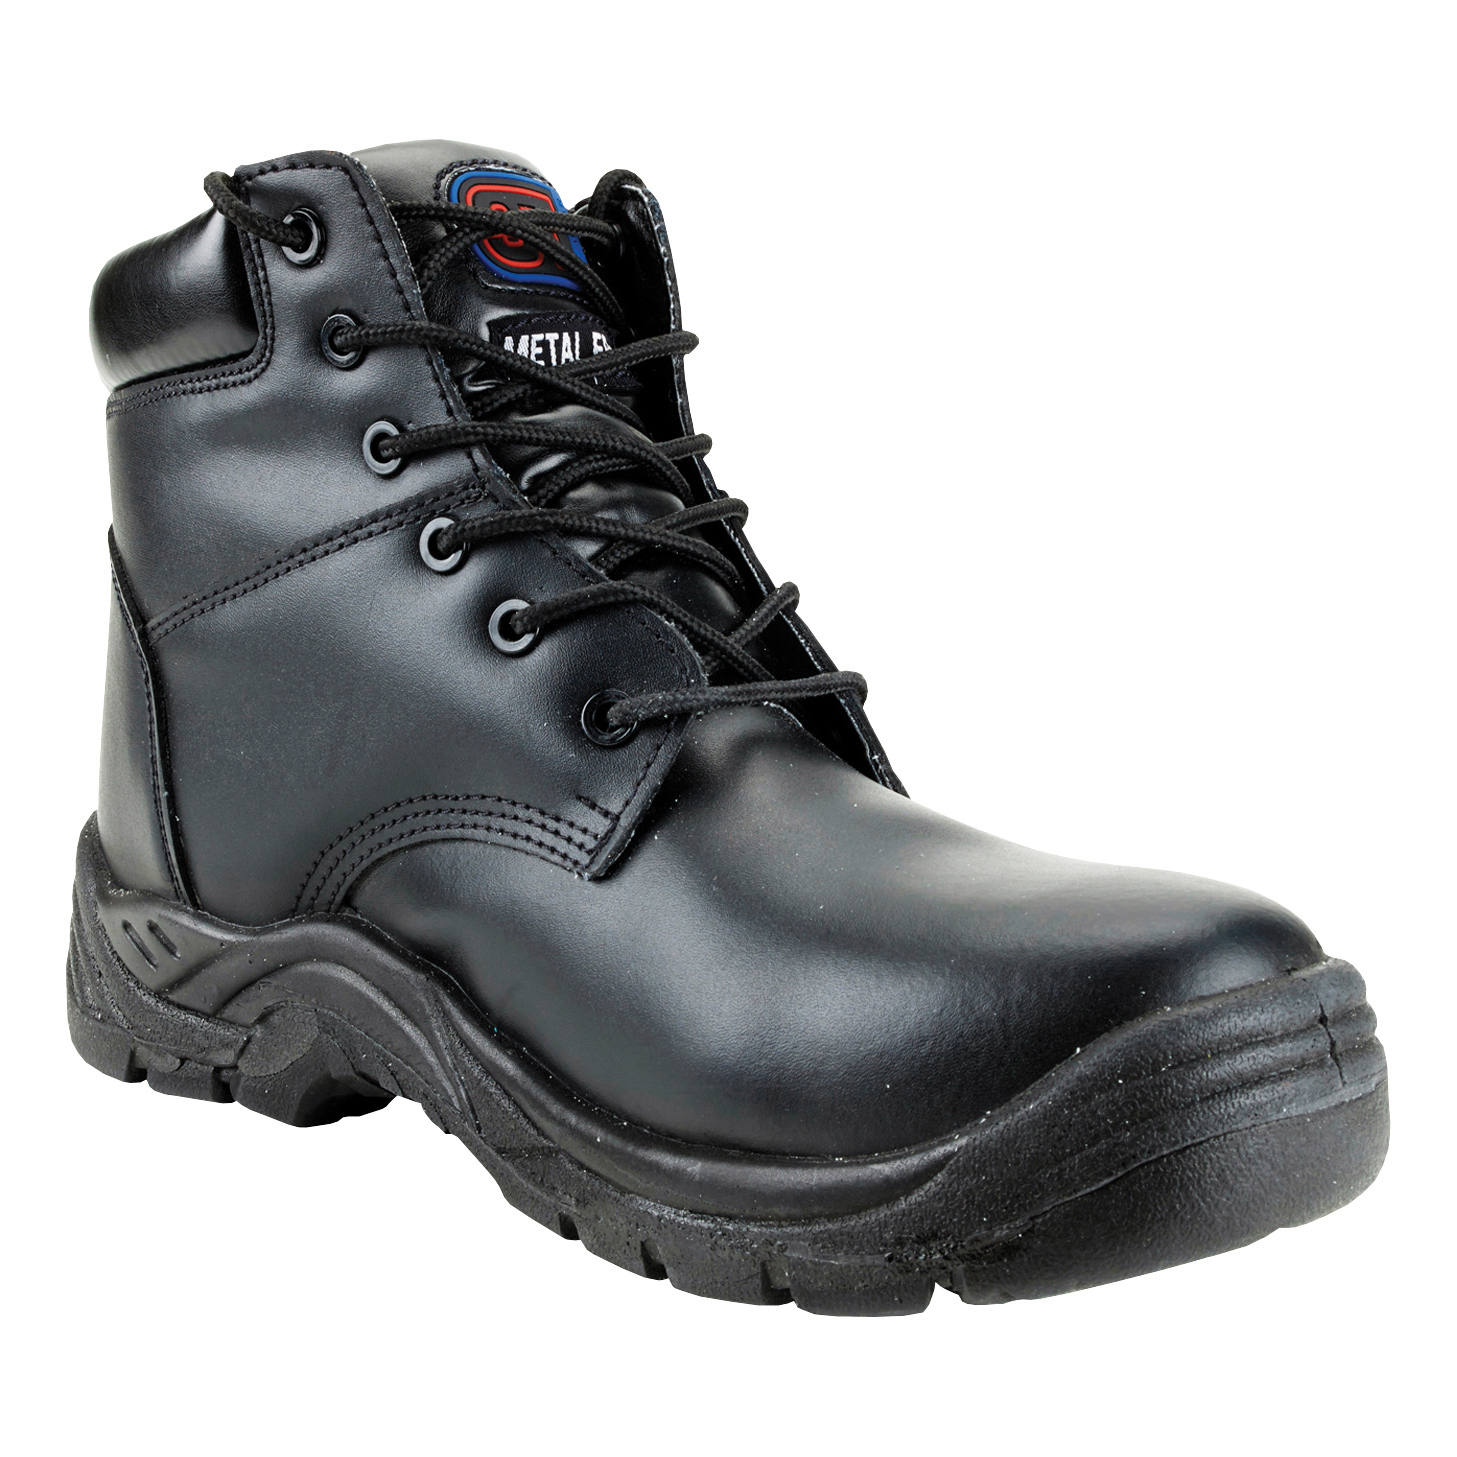 ST Toelite Boot Leather Comp' Midsole Safety Toecap Metal Free sze 12 Blk Ref 90177 *Approx 3 Day L/Time*